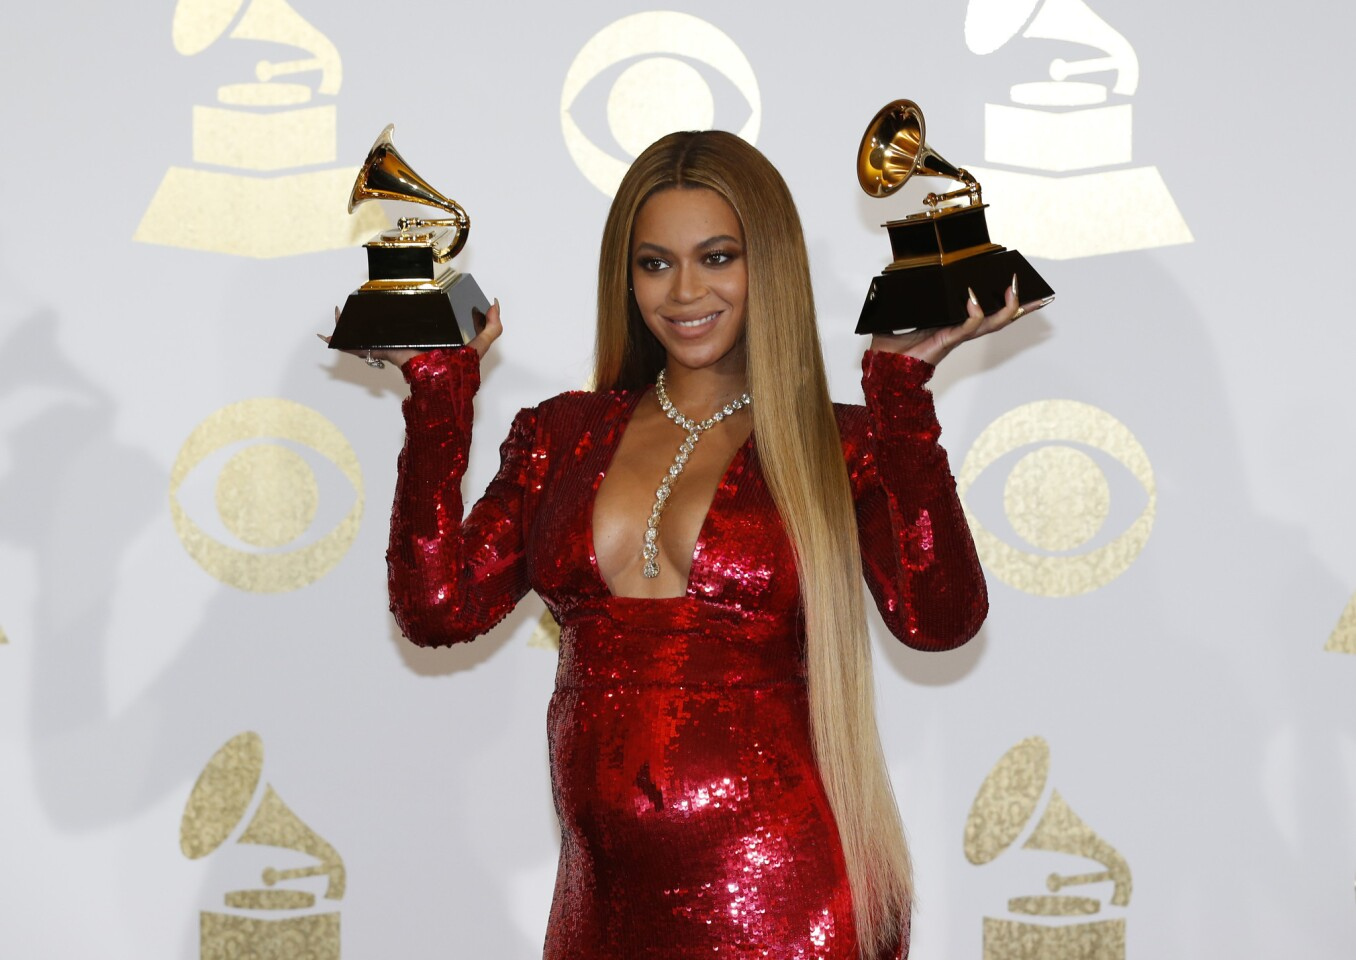 Beyonce backstage at the 59th Grammy Awards at Staples Center in Los Angeles.